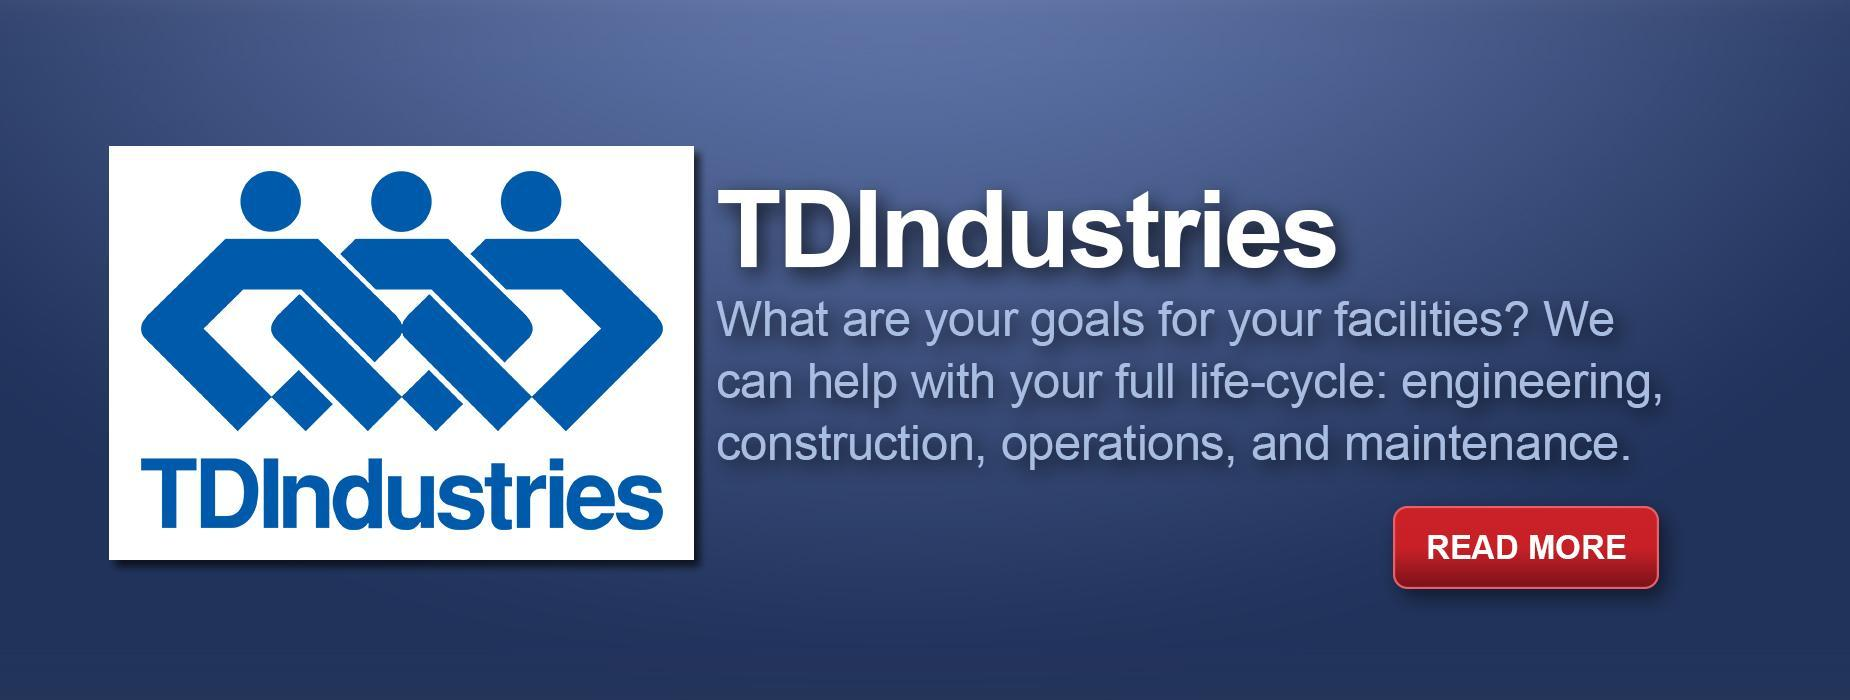 TDIndustries: What are your goals for your facilities? we can help with your full life-cycle: engineering, construction, operations, and maintenance. Read More